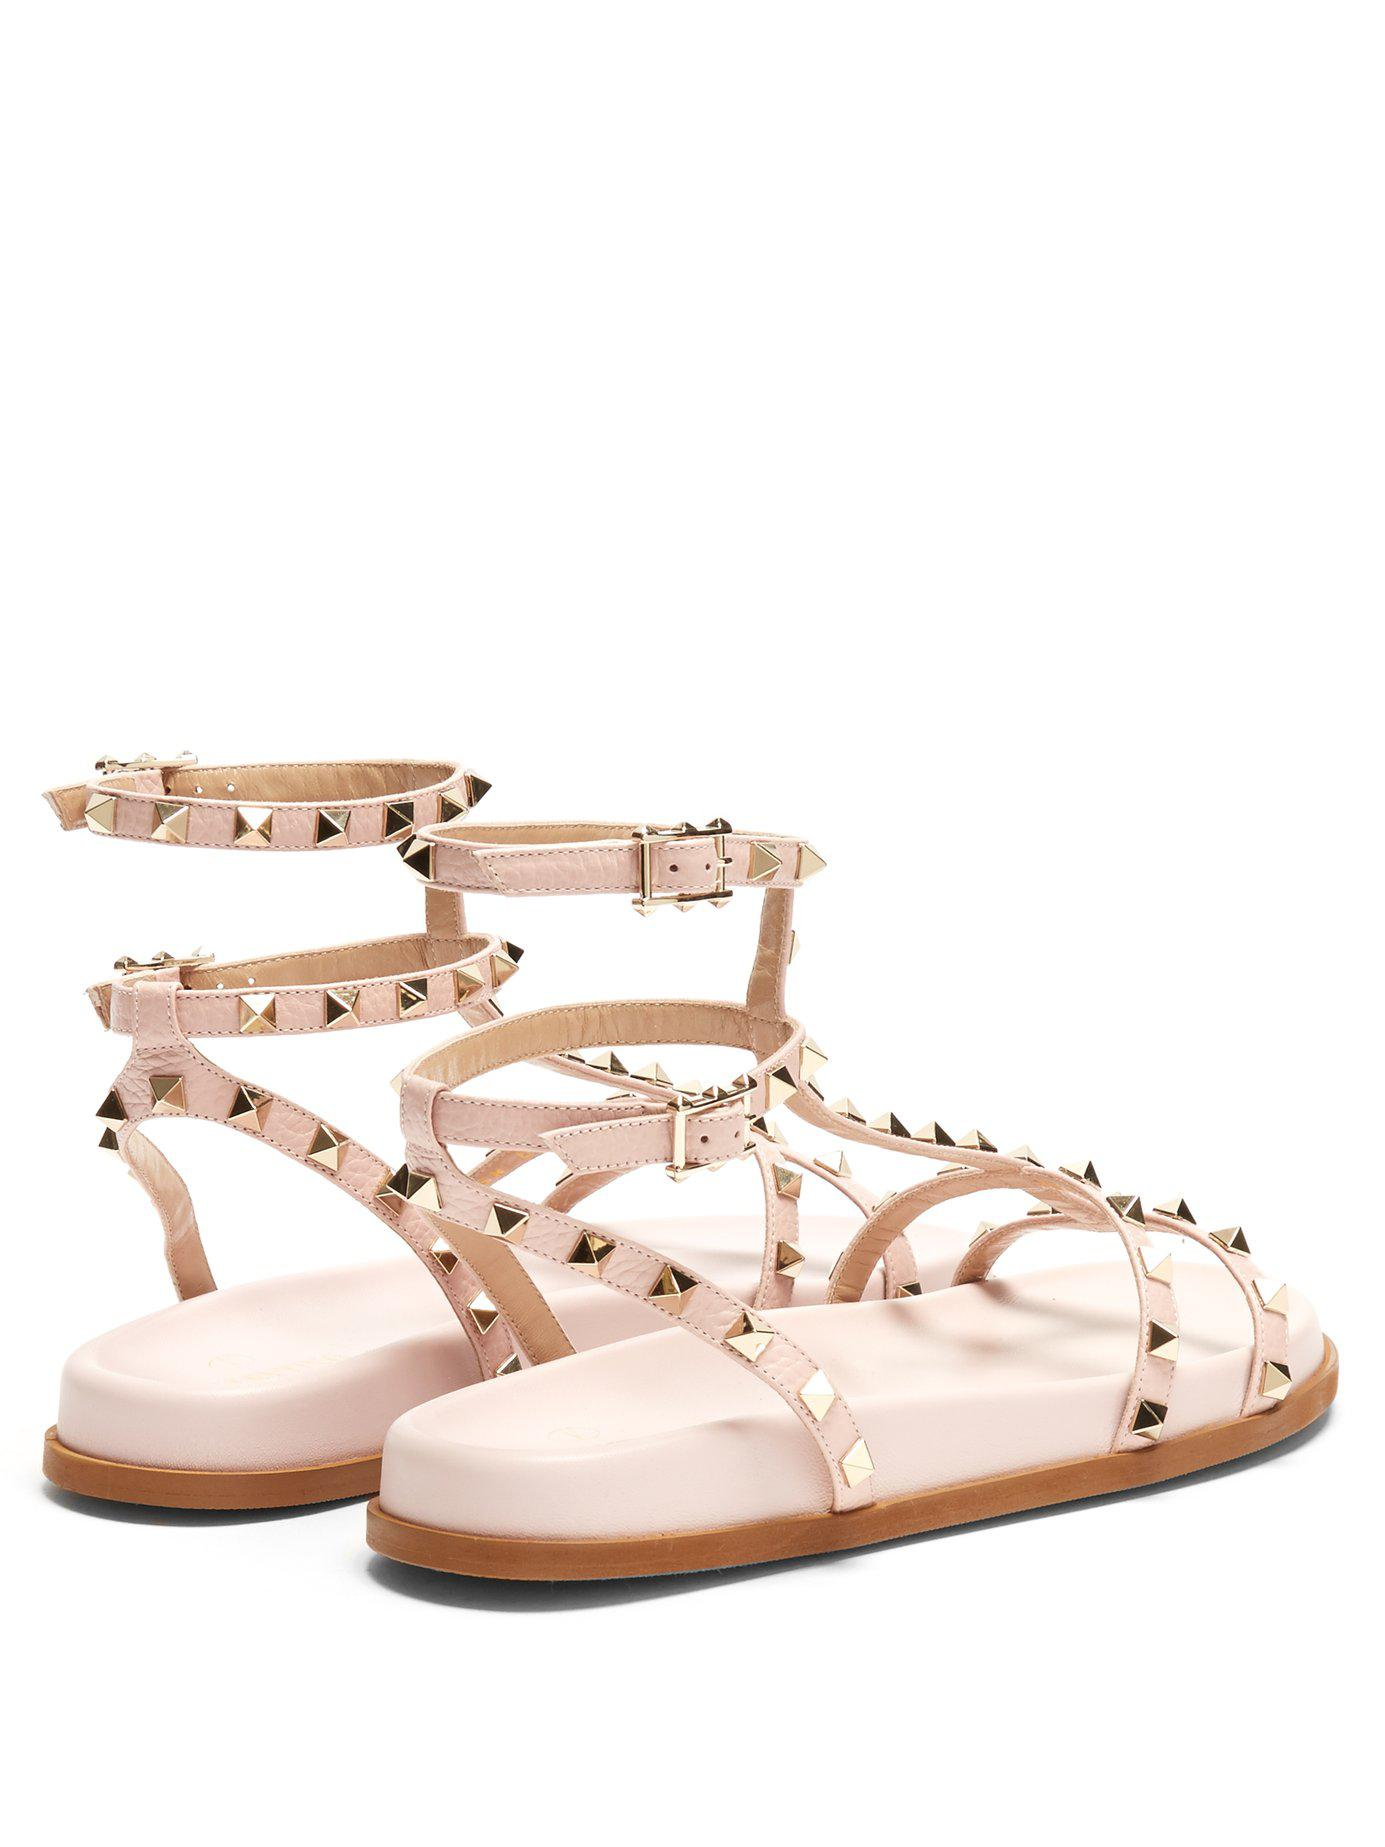 Submerge Rockstud leather sandals Valentino Cheap Sale Clearance v7OxY4VA